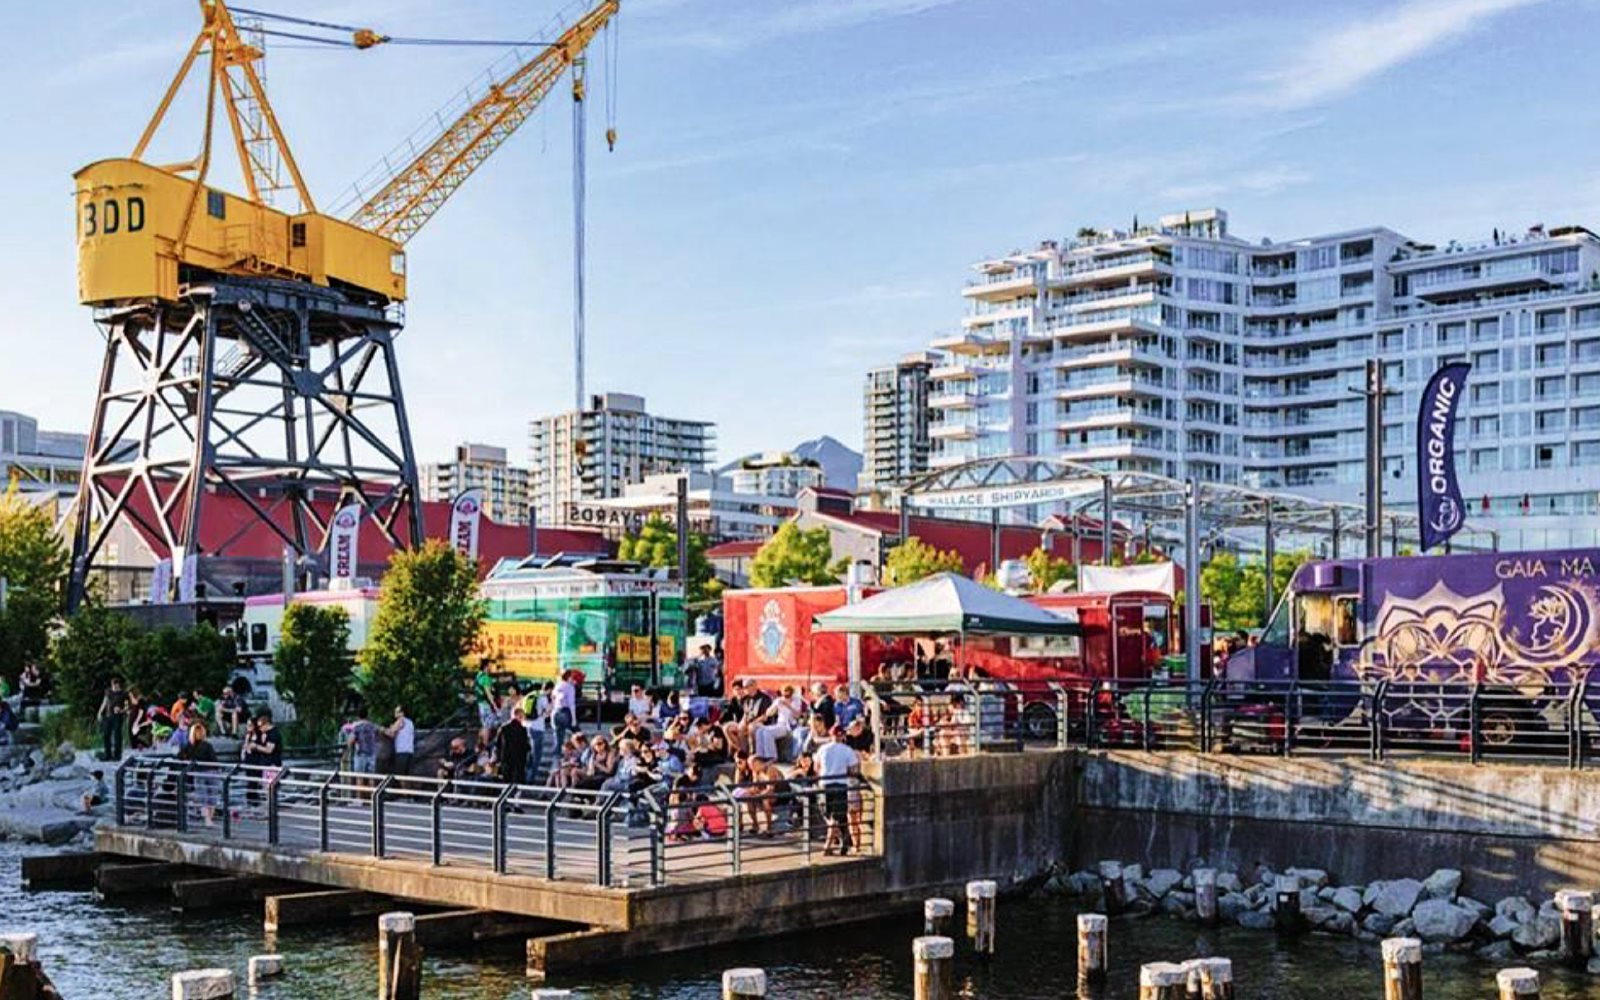 People enjoy the Shipyards Night Market